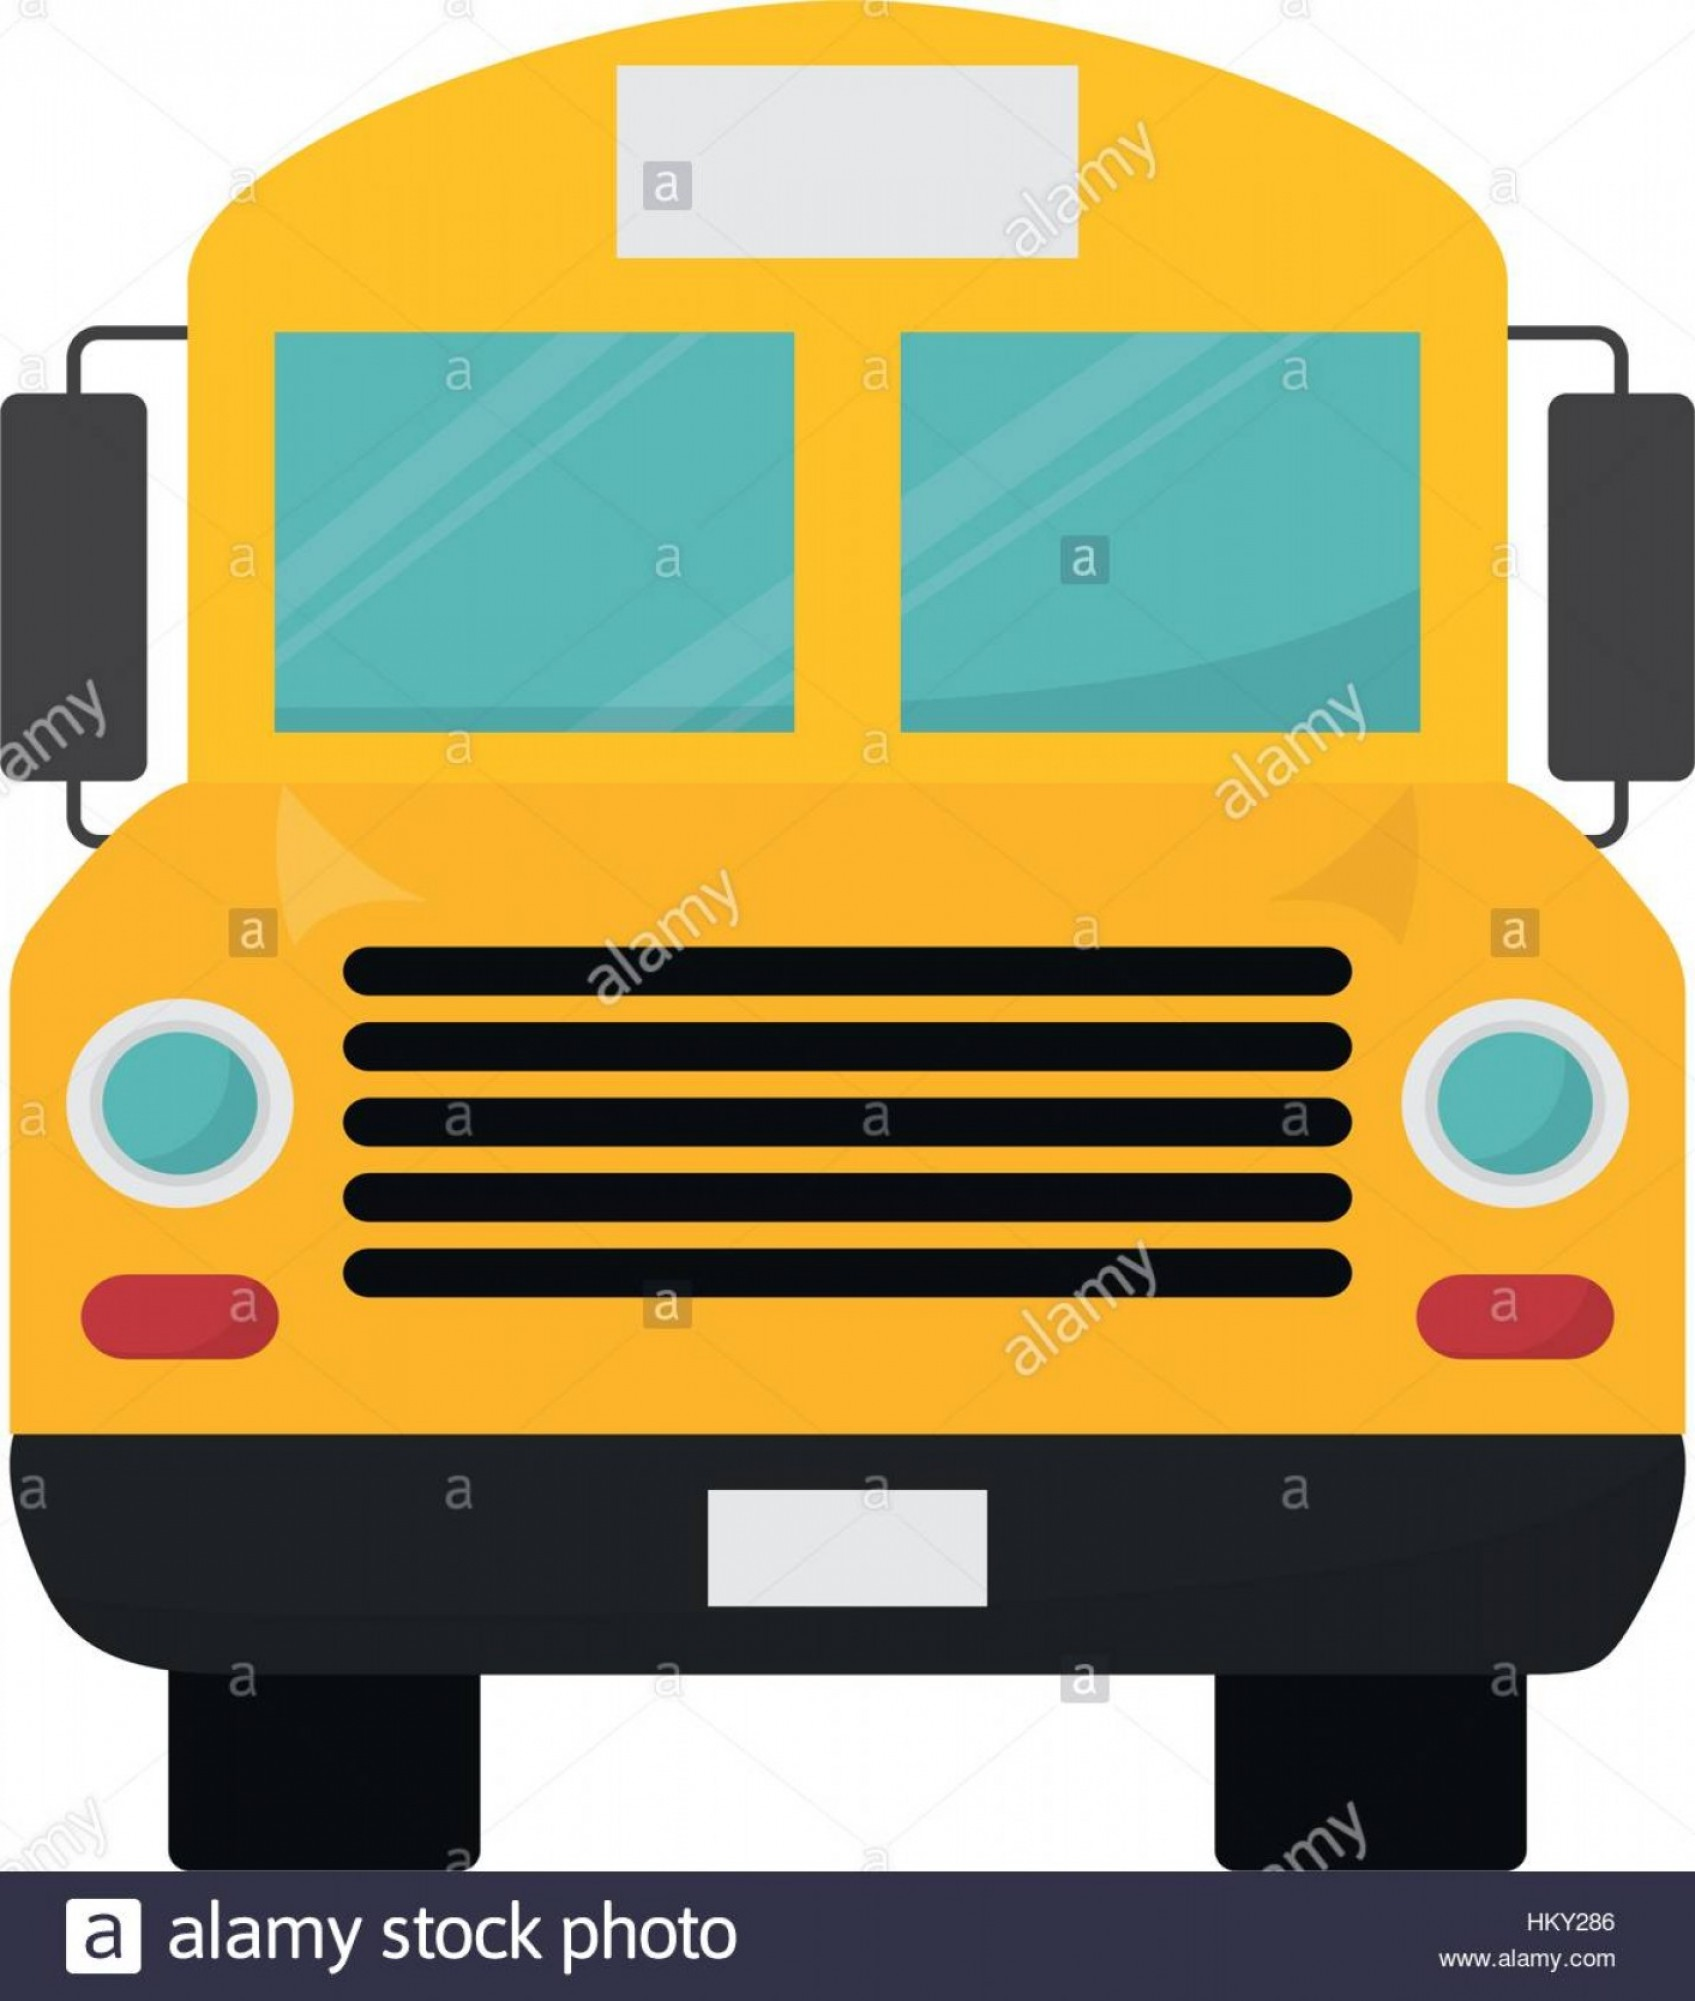 Pic Bus Vector Format: Stock Photo School Bus Front View Icon Vector Illustration Graphic Design